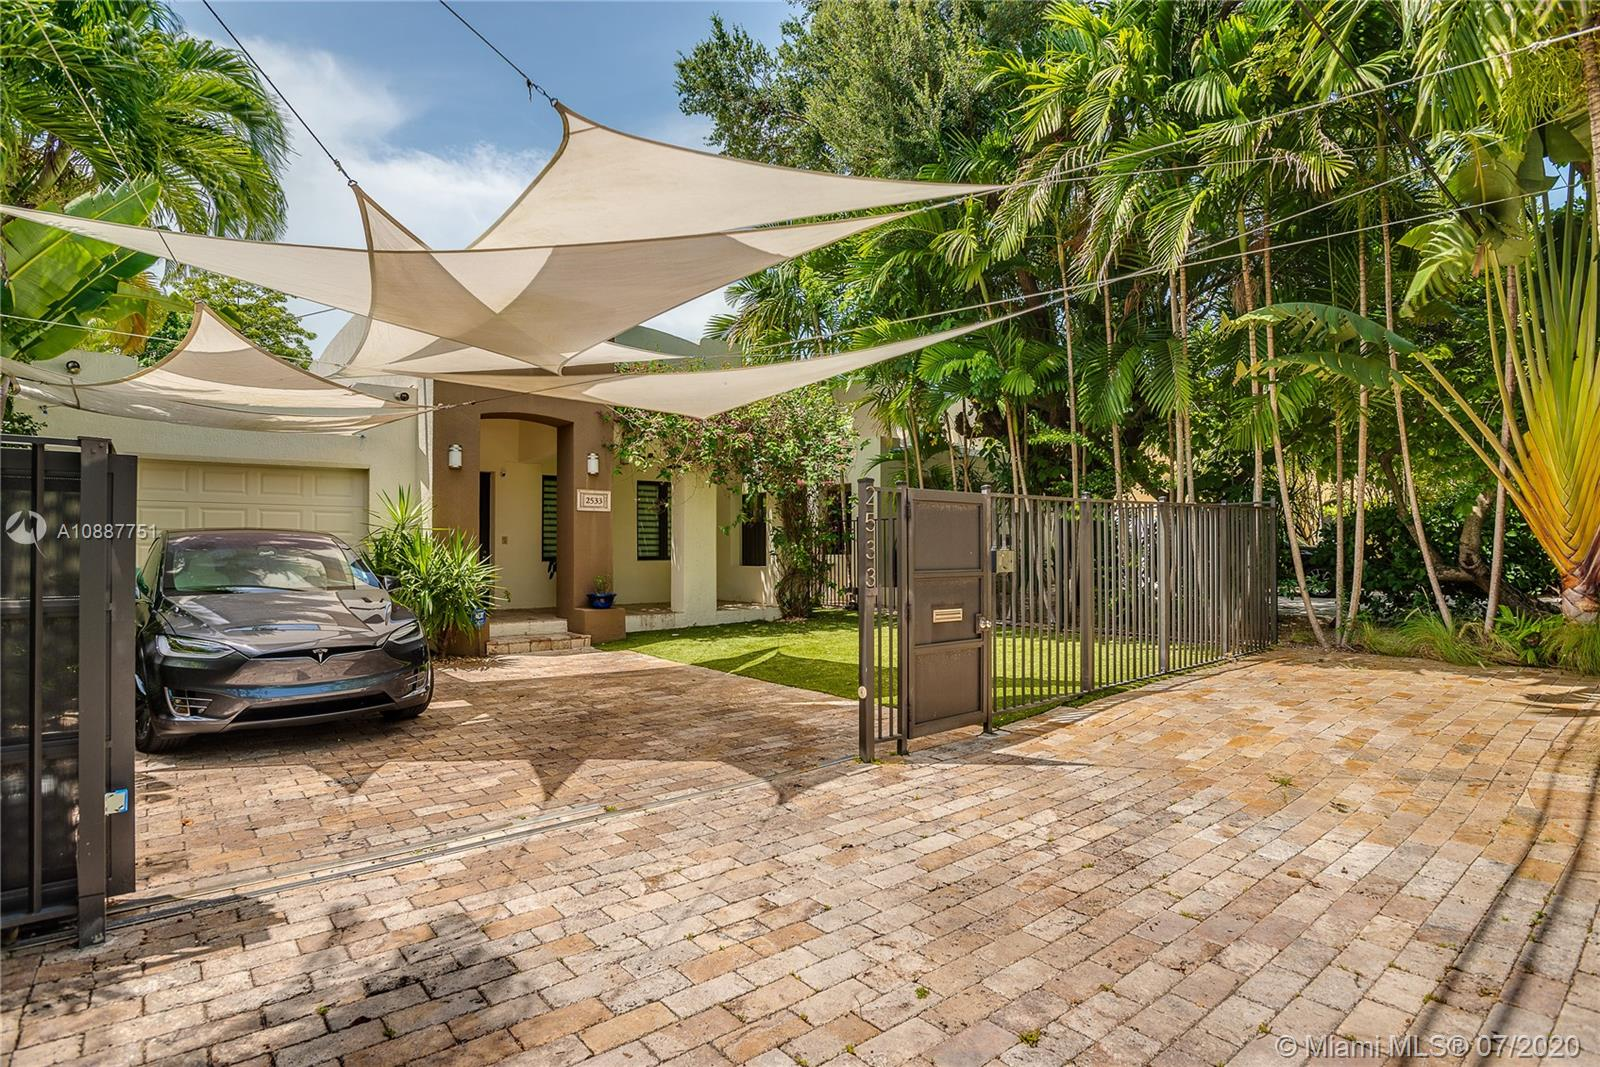 2533  Andros Ave  For Sale A10887751, FL